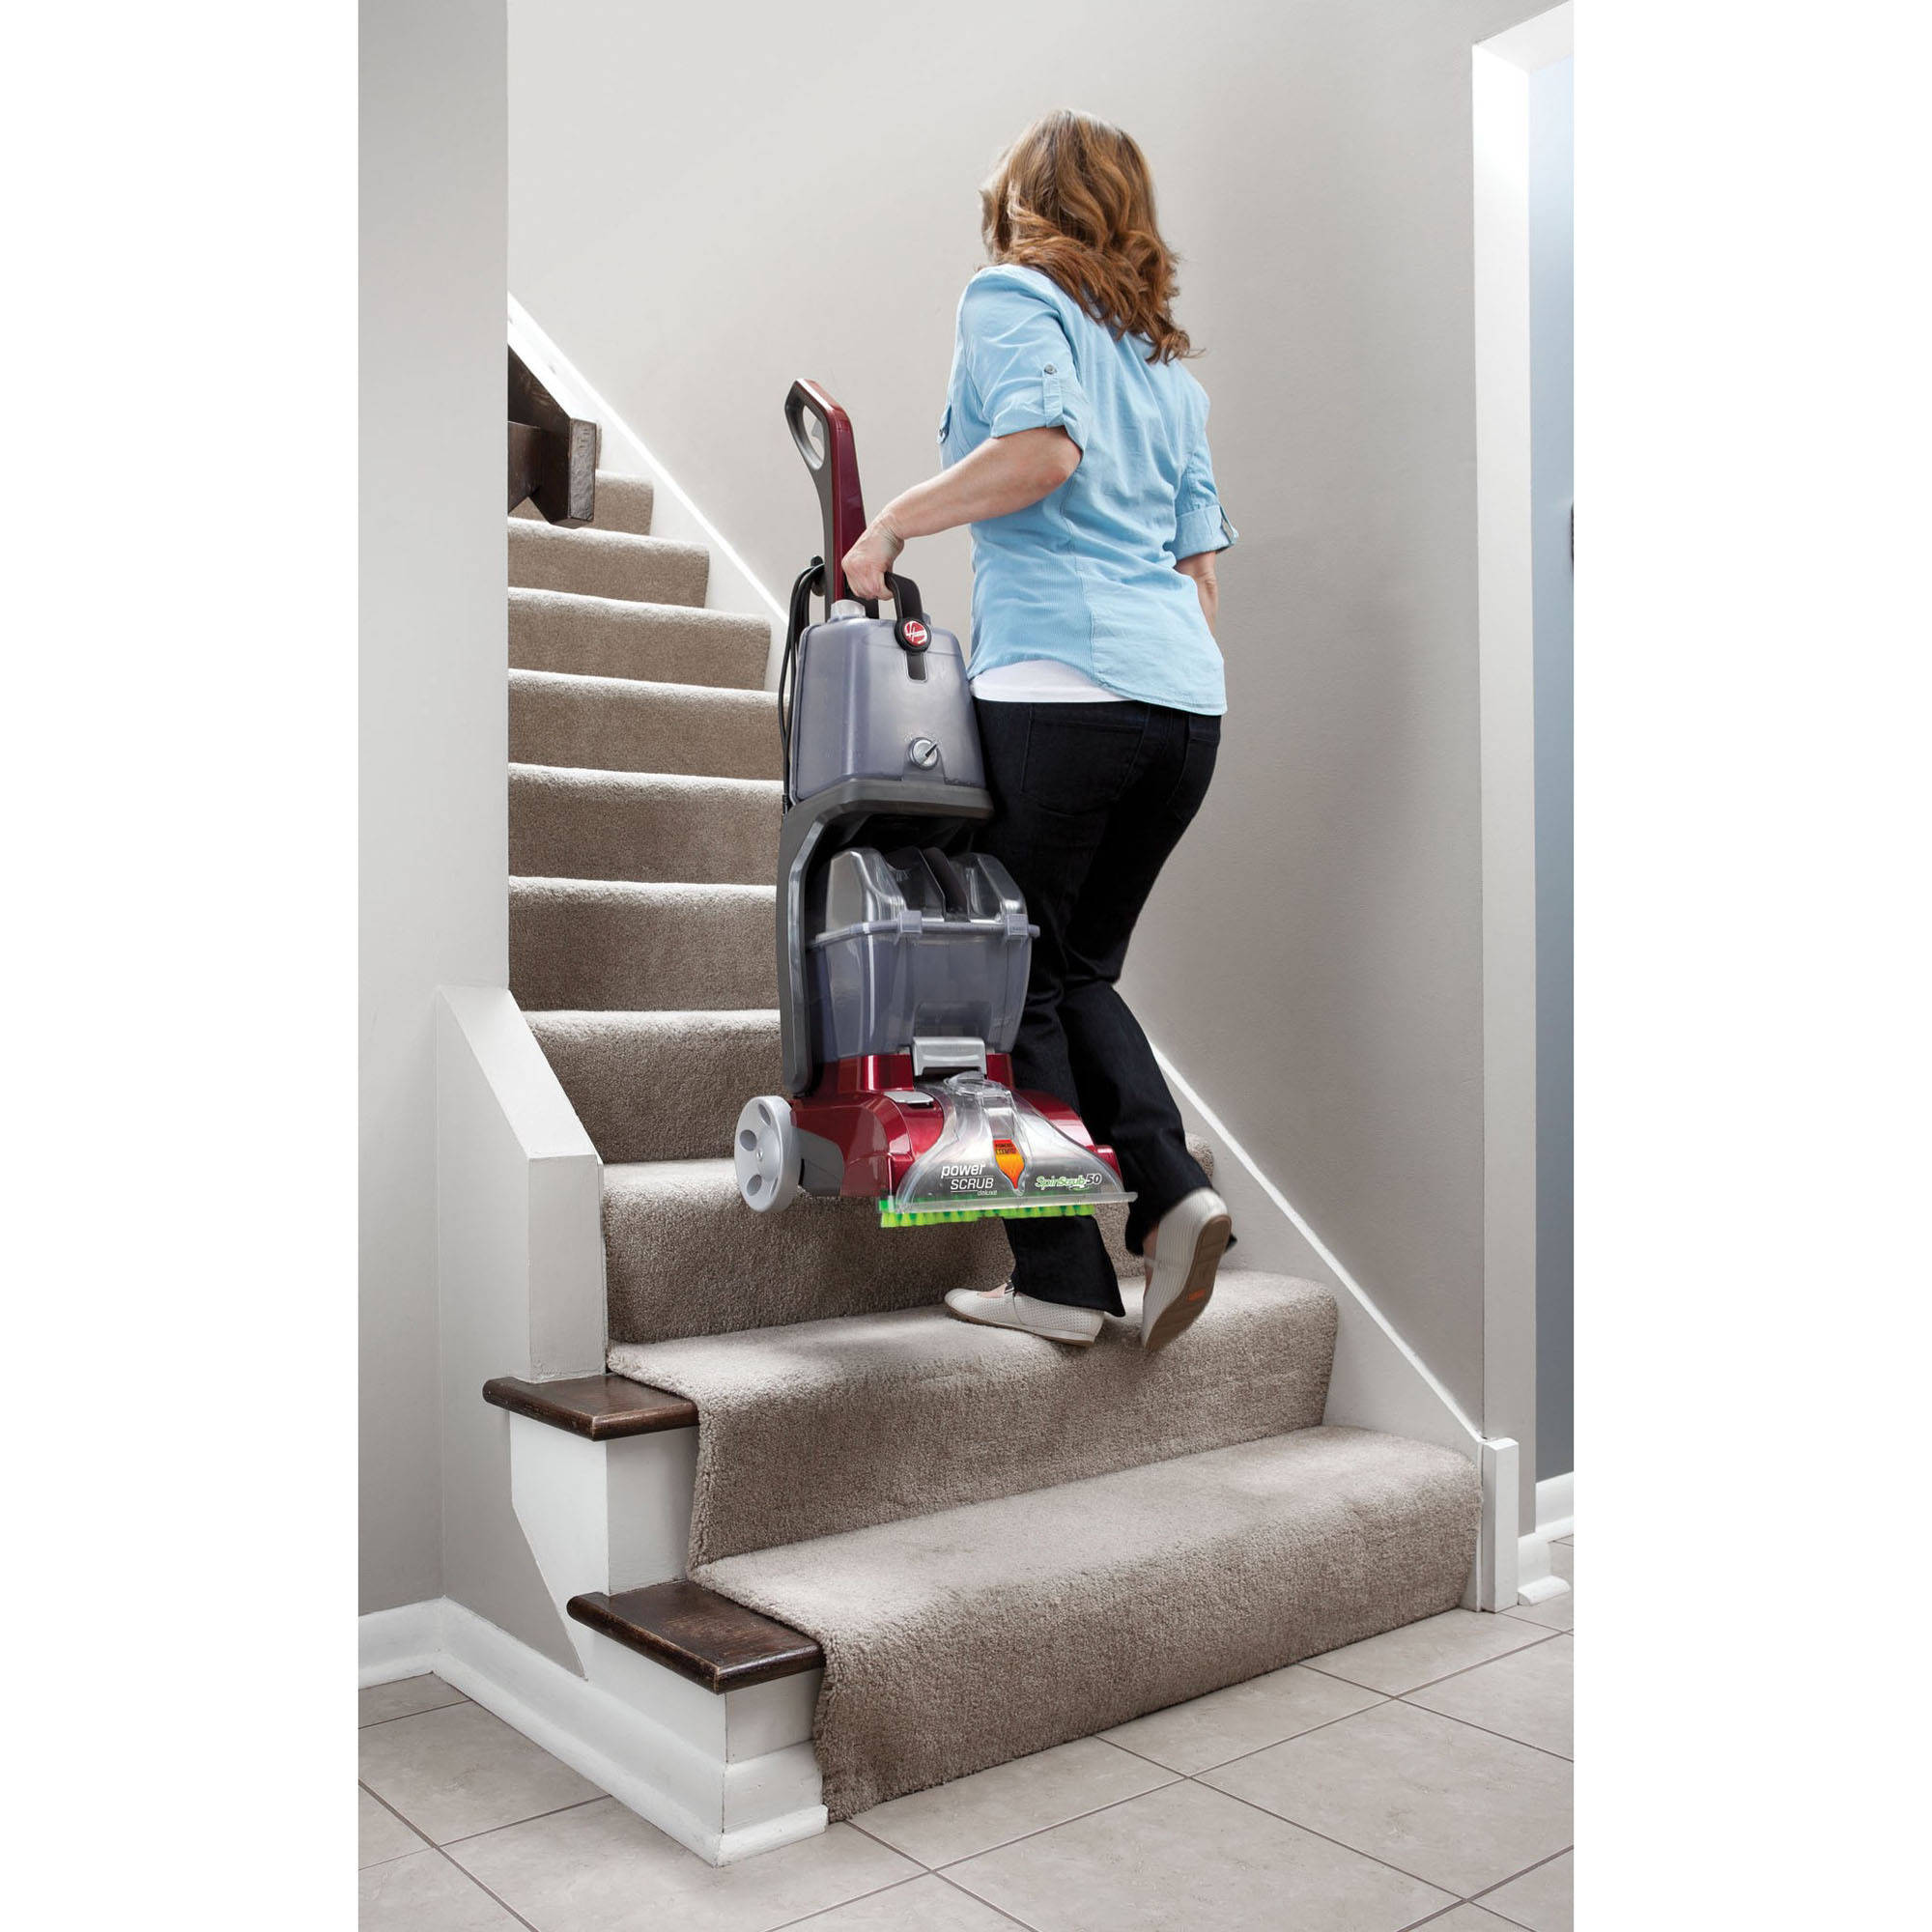 Hoover Power Scrub Deluxe Carpet Cleaner, FH50150   Walmart.com